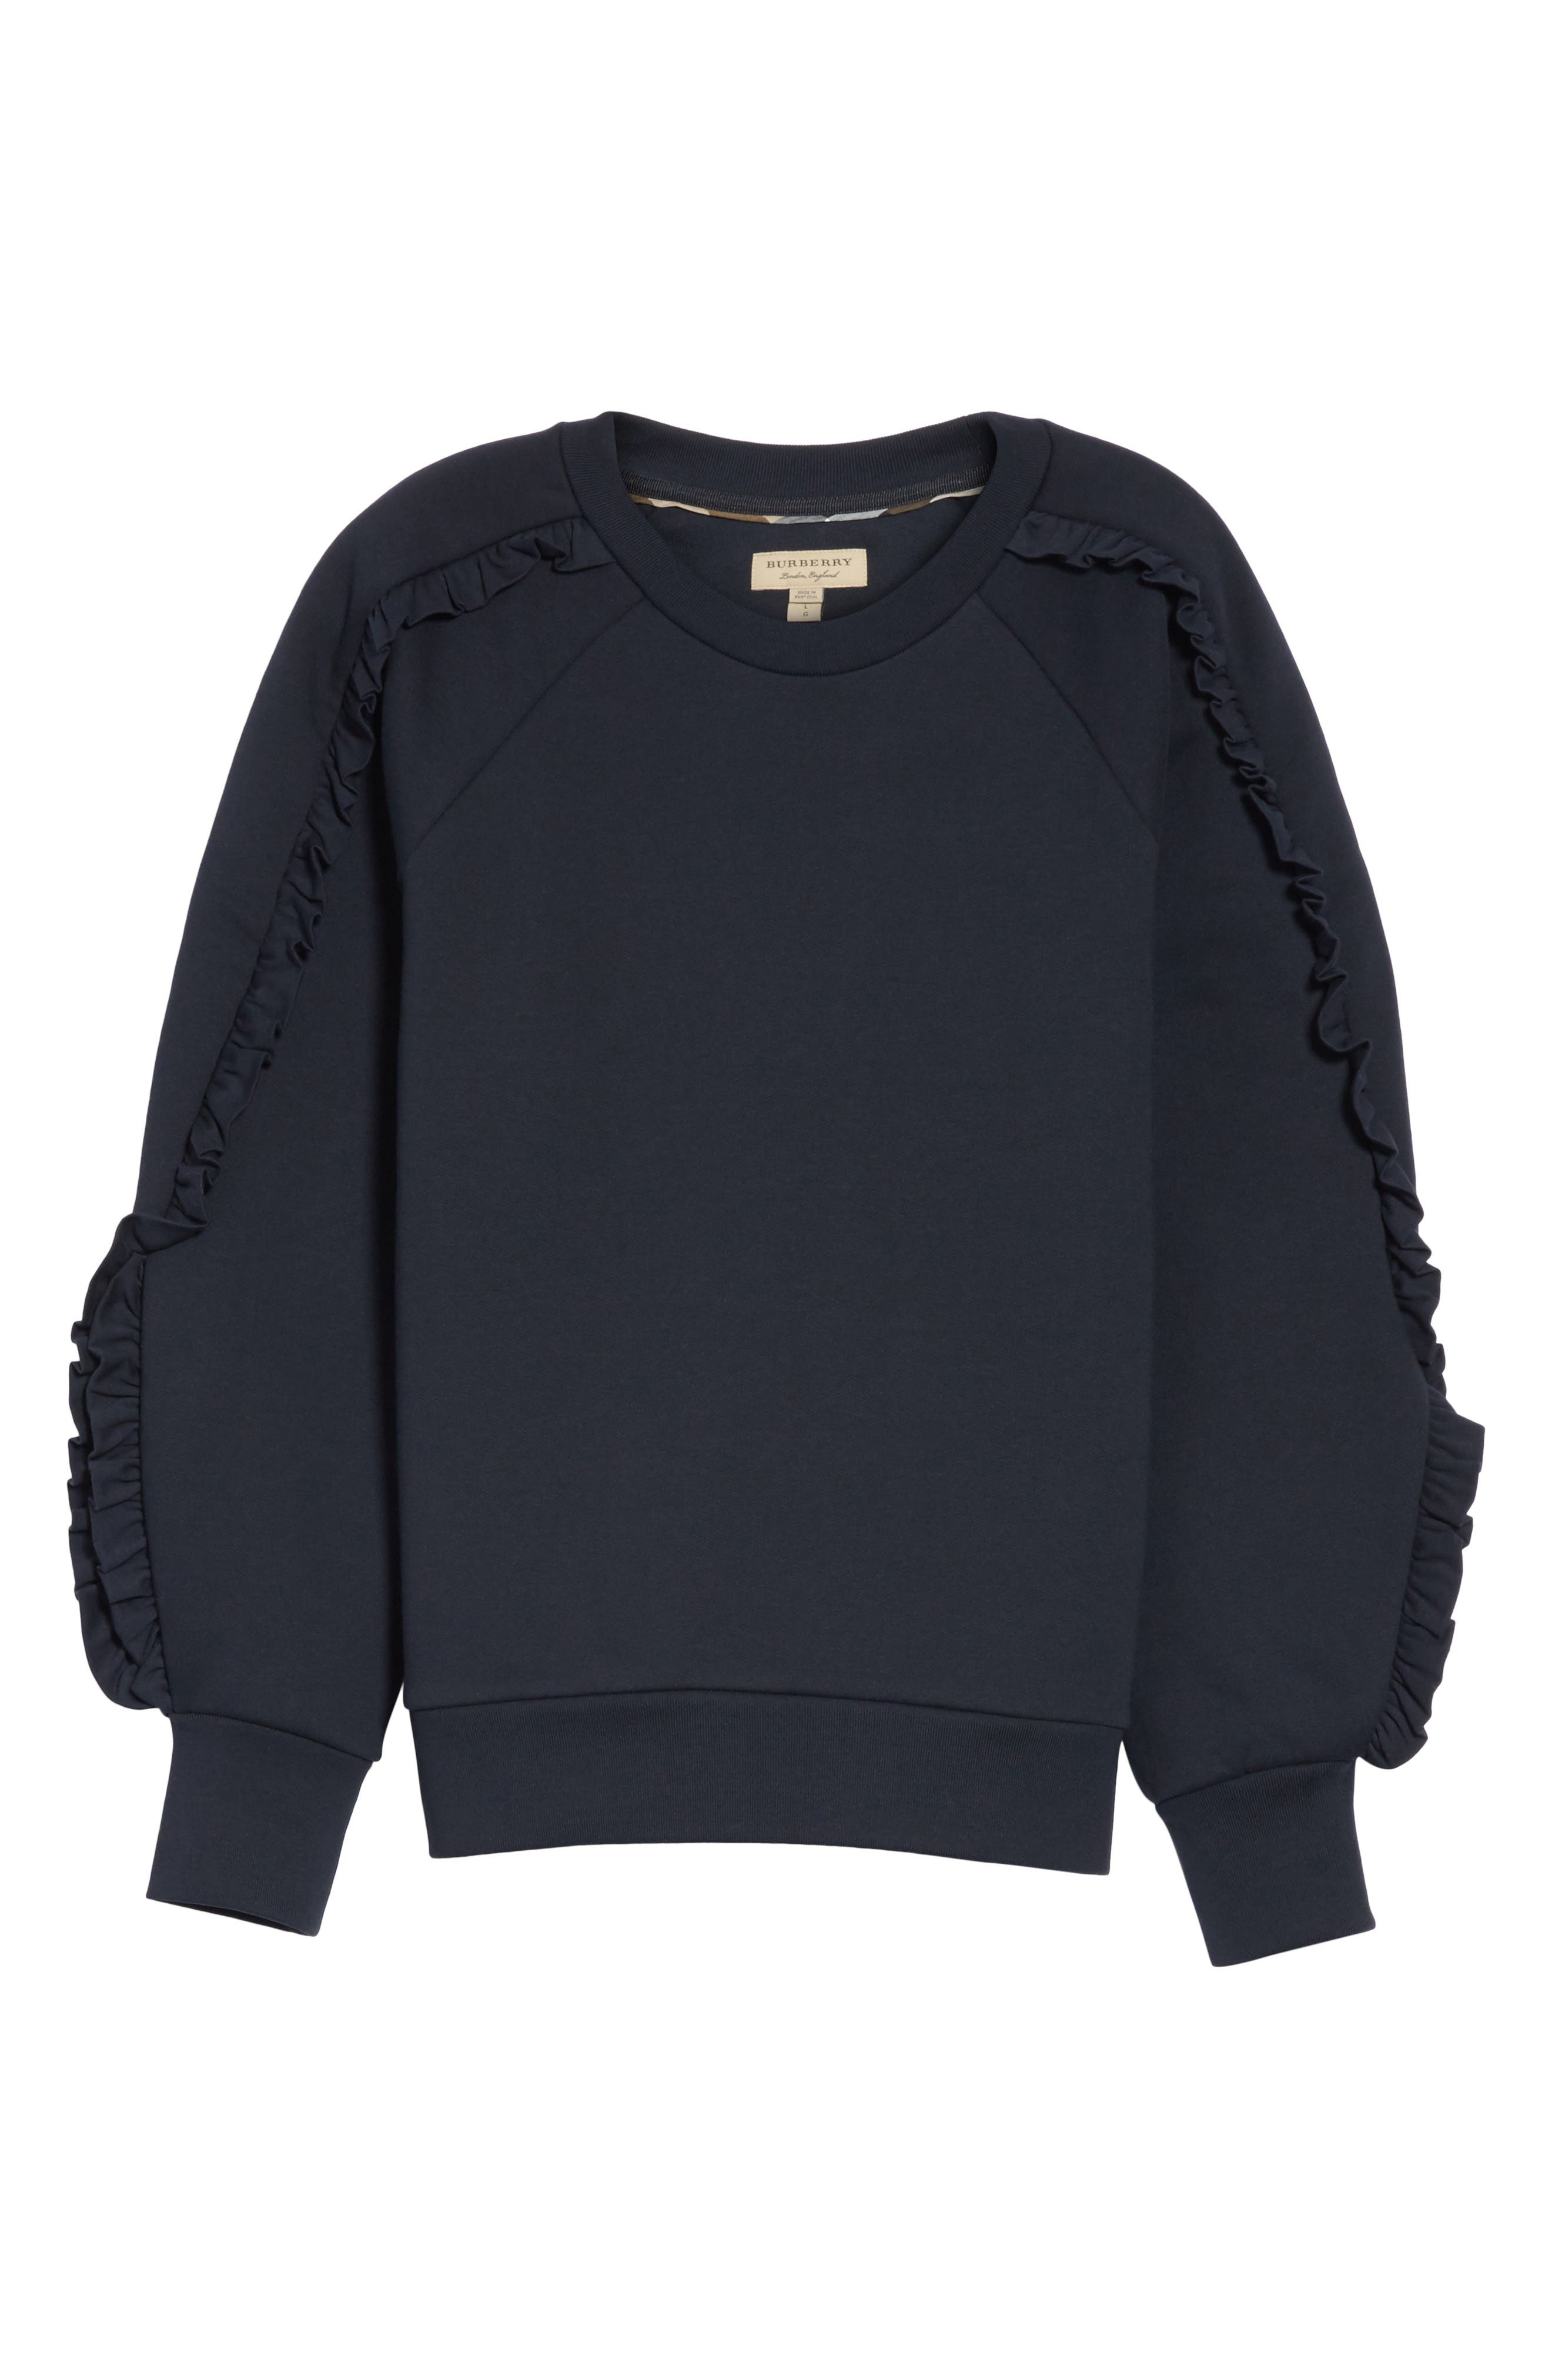 Kupa Ruffle Sleeve Sweatshirt,                             Alternate thumbnail 12, color,